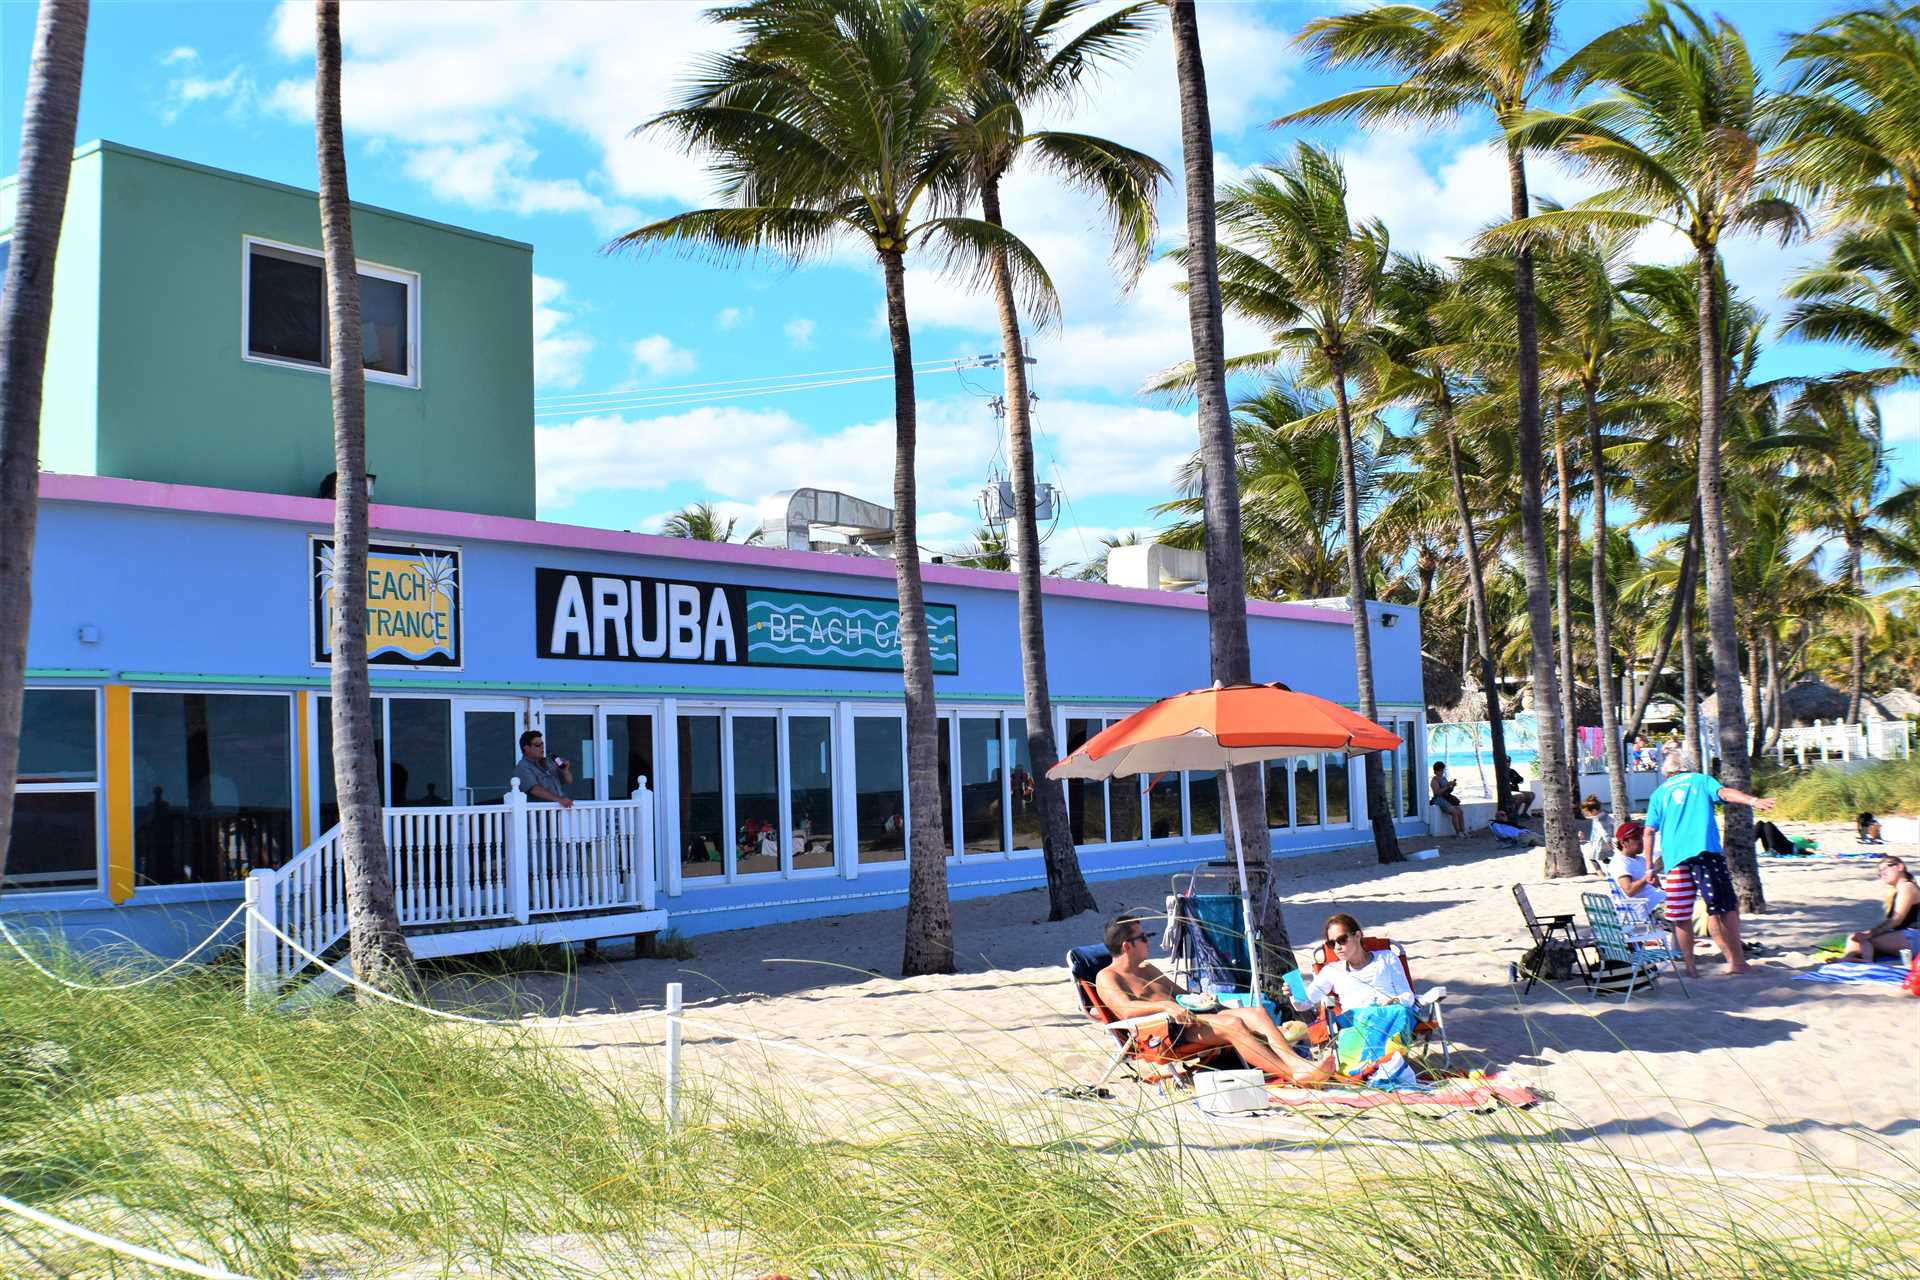 Stop in at the famous Aruba Beach Cafe.